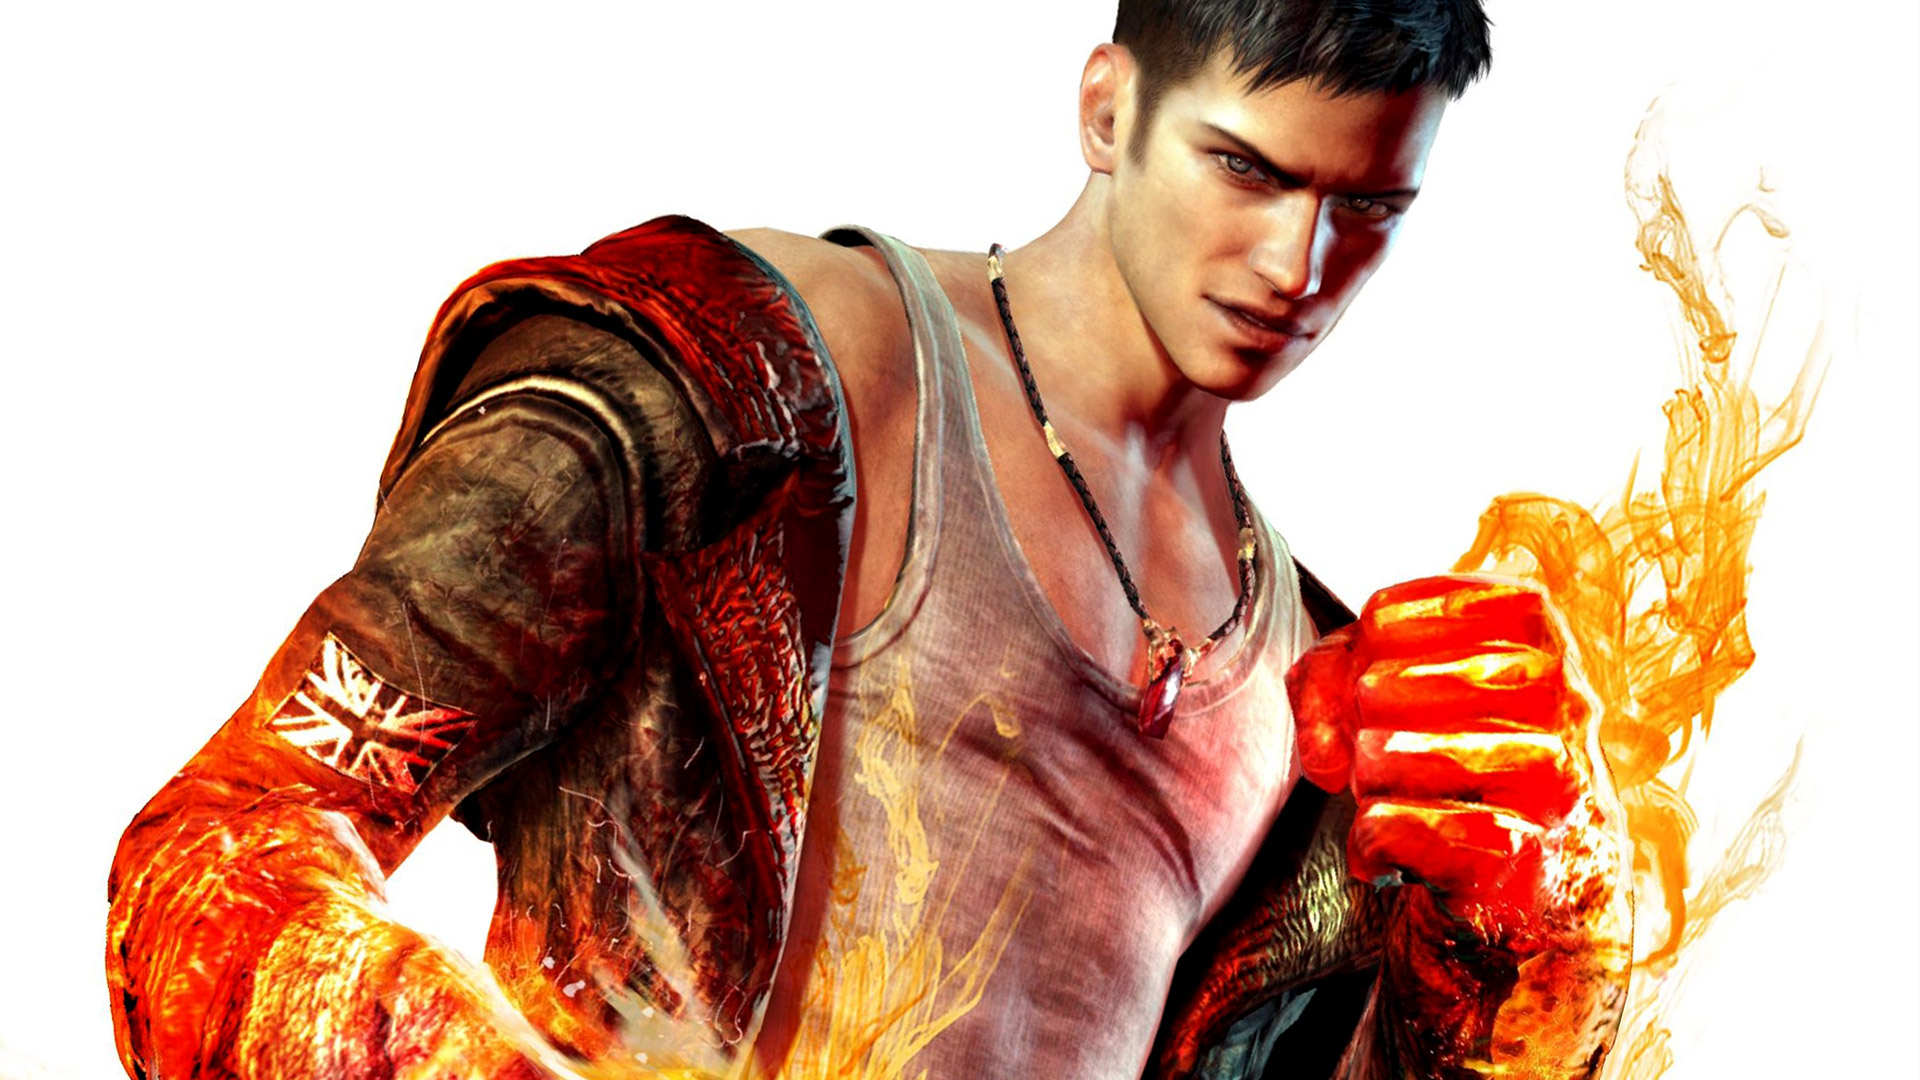 Dmc devil may cry full hd wallpaper and background image video game dmc devil may cry wallpaper voltagebd Images